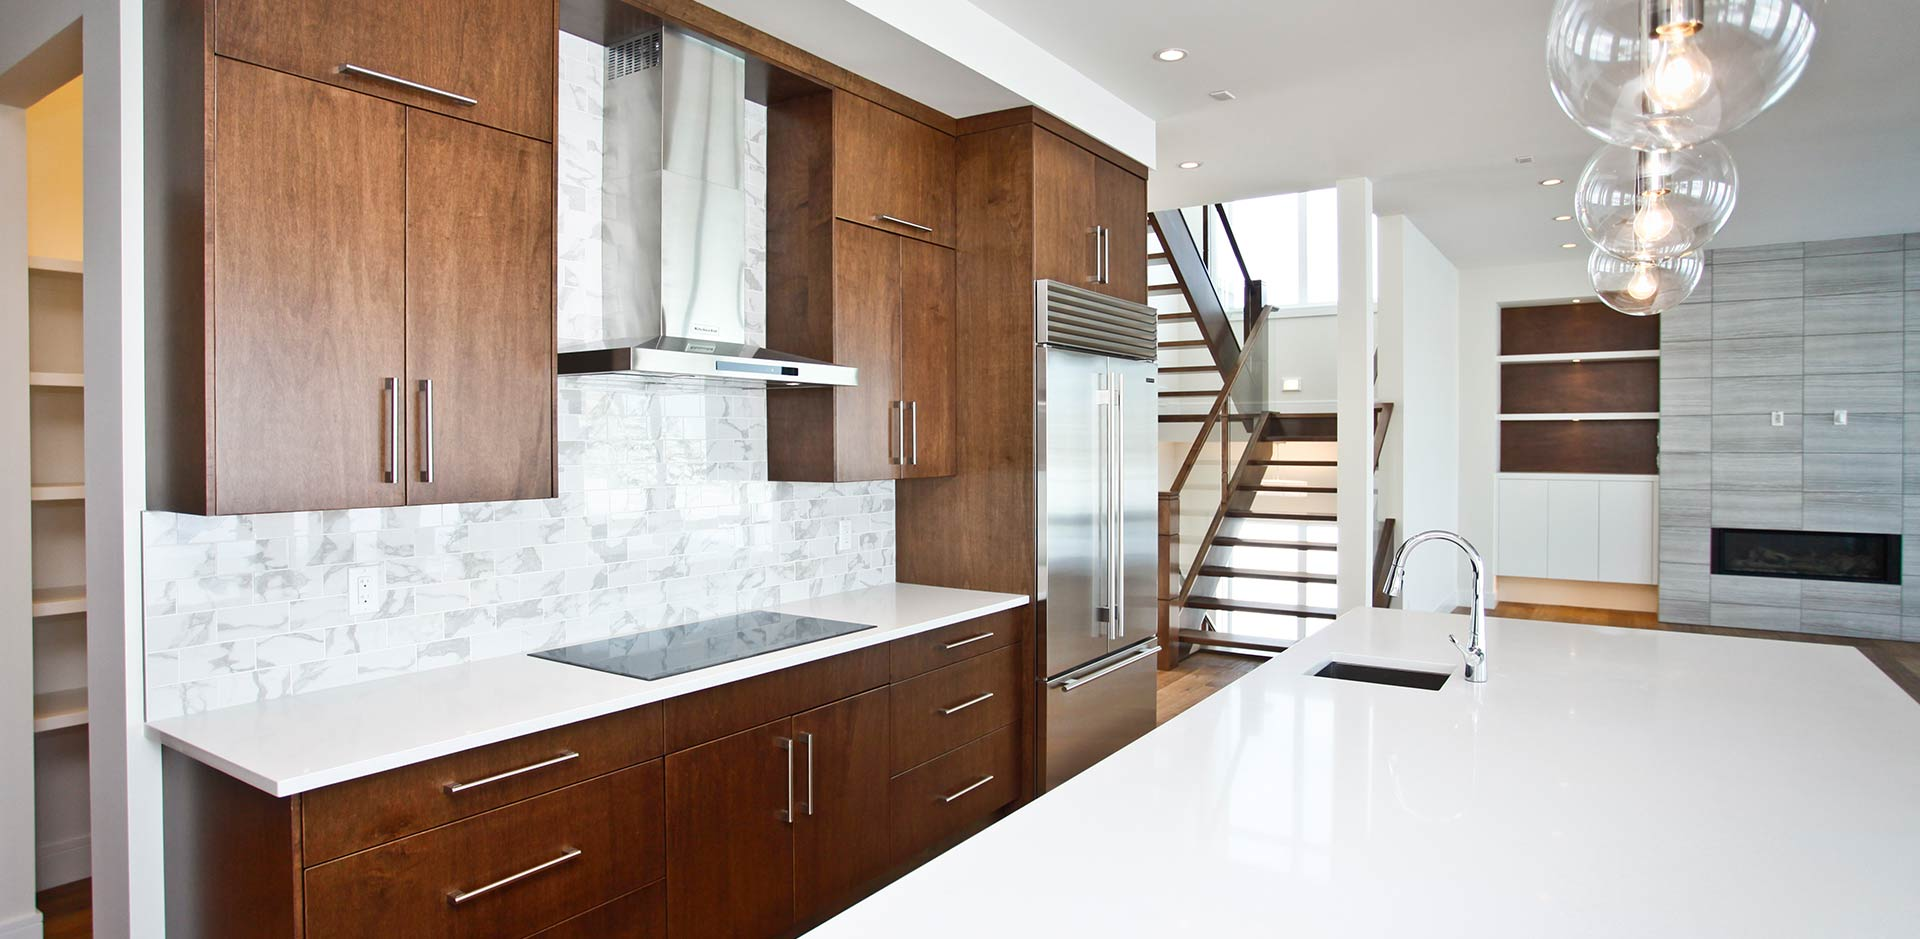 luxury-home-kitchen-3